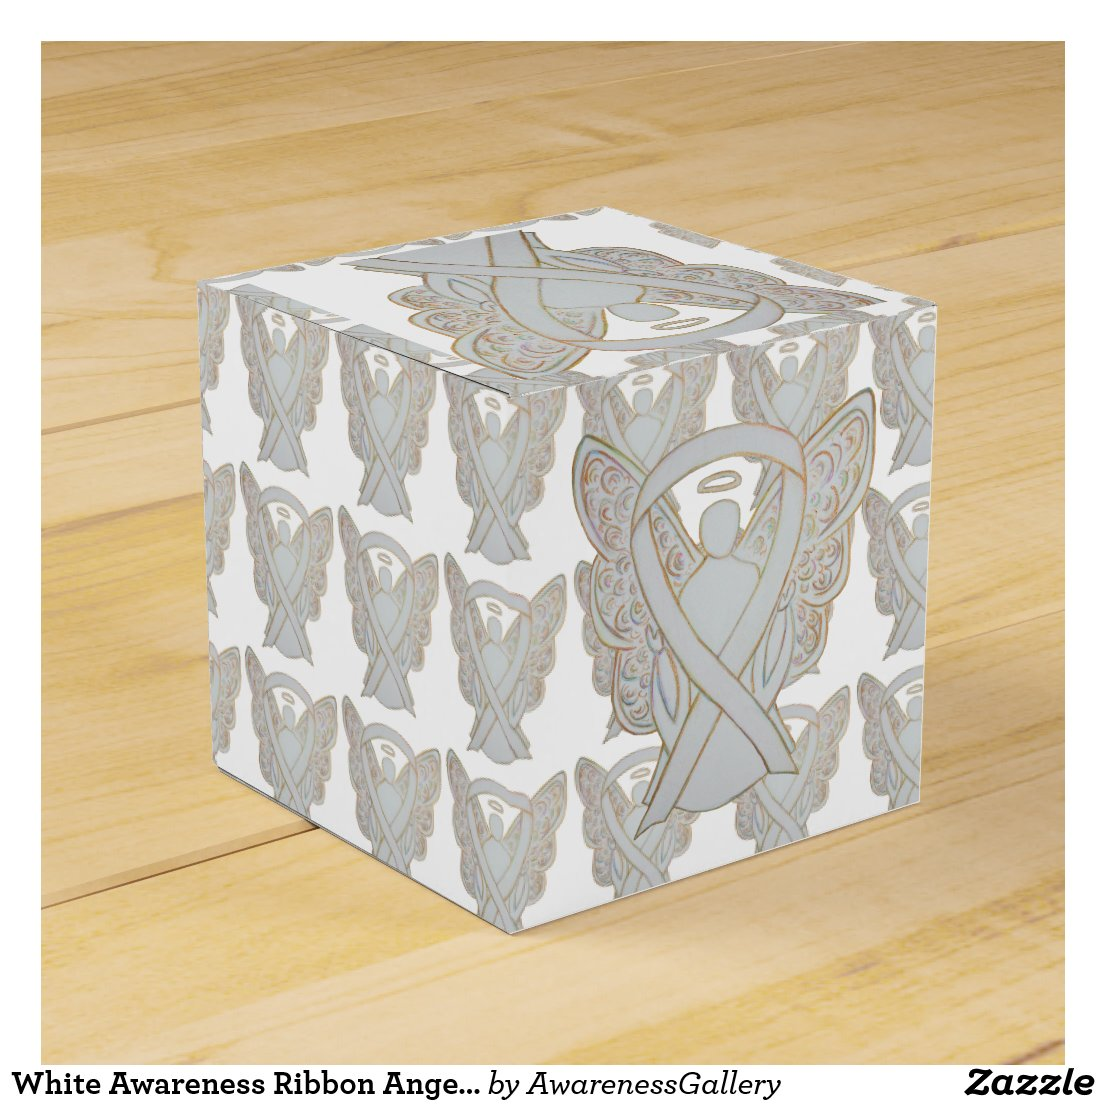 White Awareness Ribbon Angel Party Favor Boxes